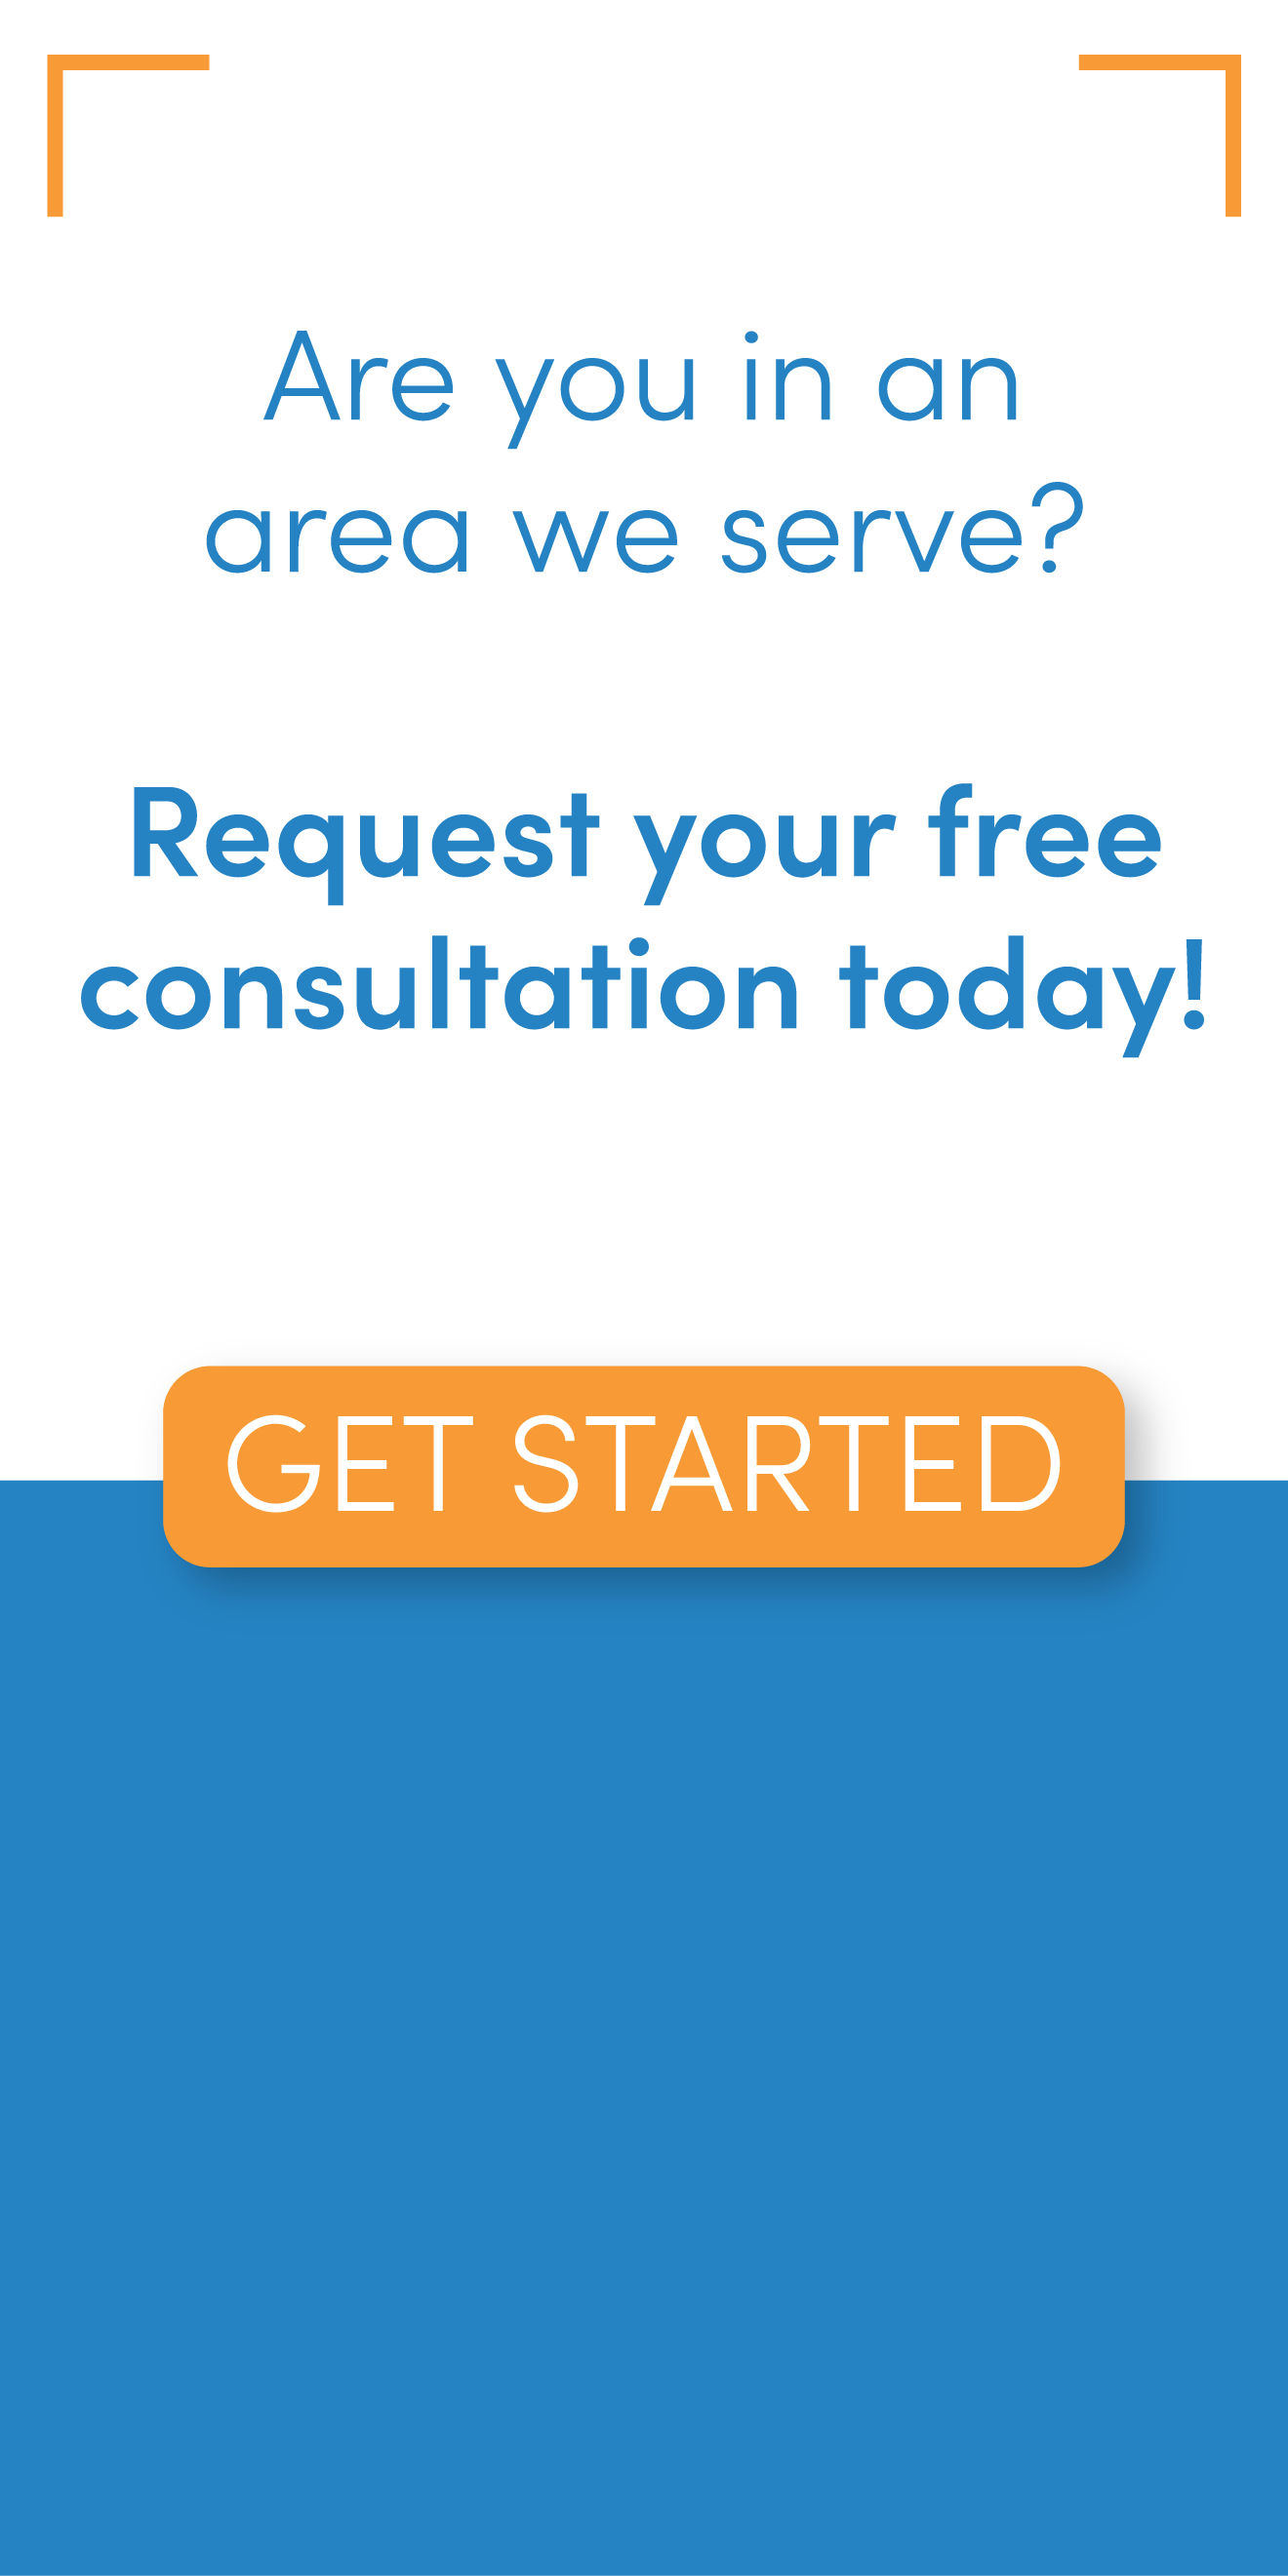 Request your free consultation today!